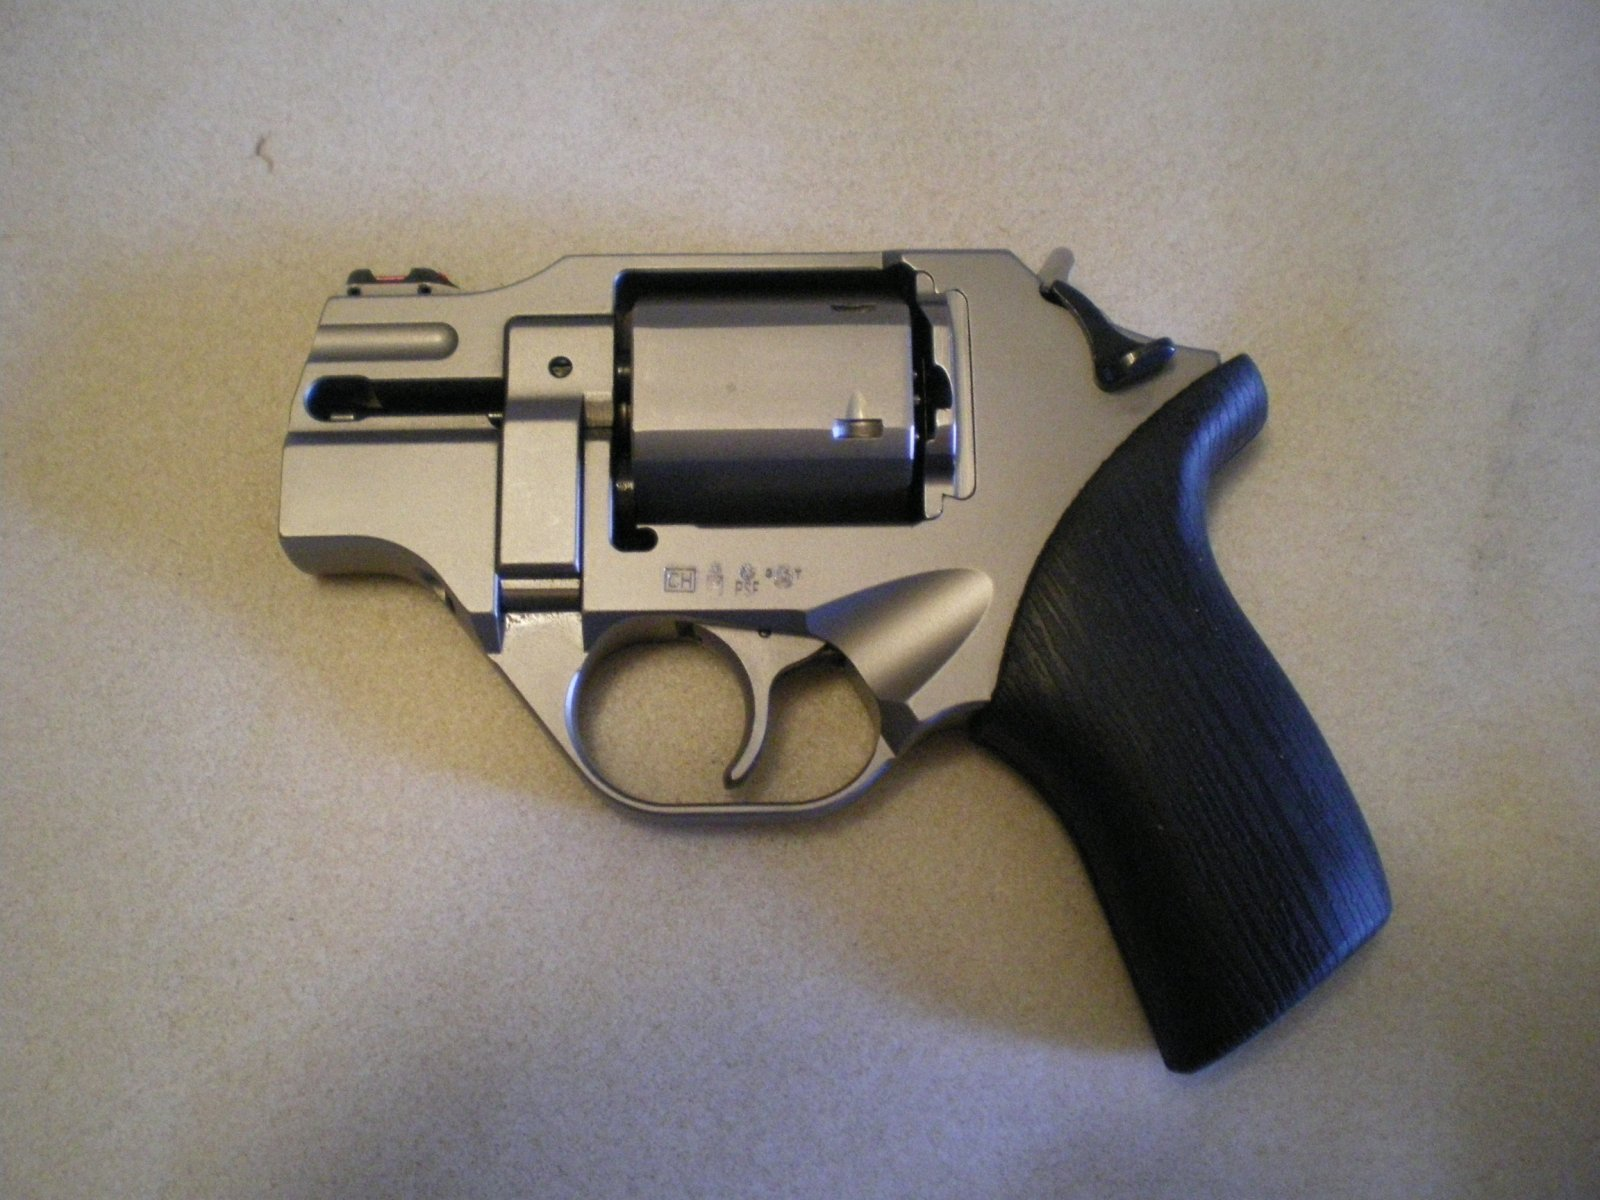 What's the ugliest gun you've ever owned? | Page 4 | The